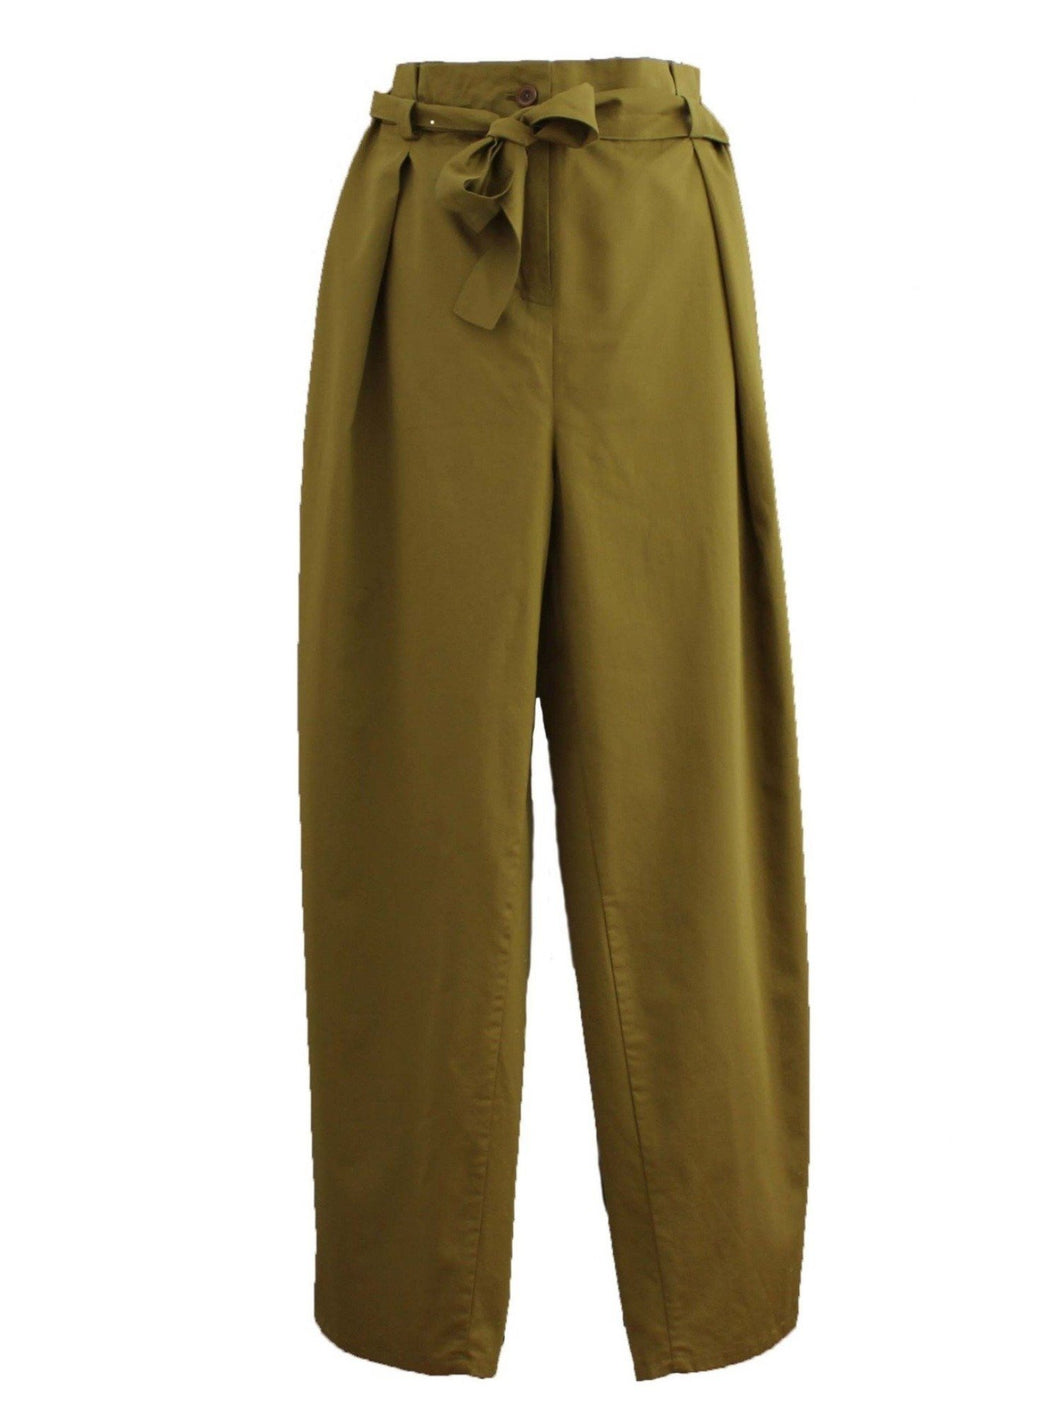 High Waist Khaki Trousers - LDC